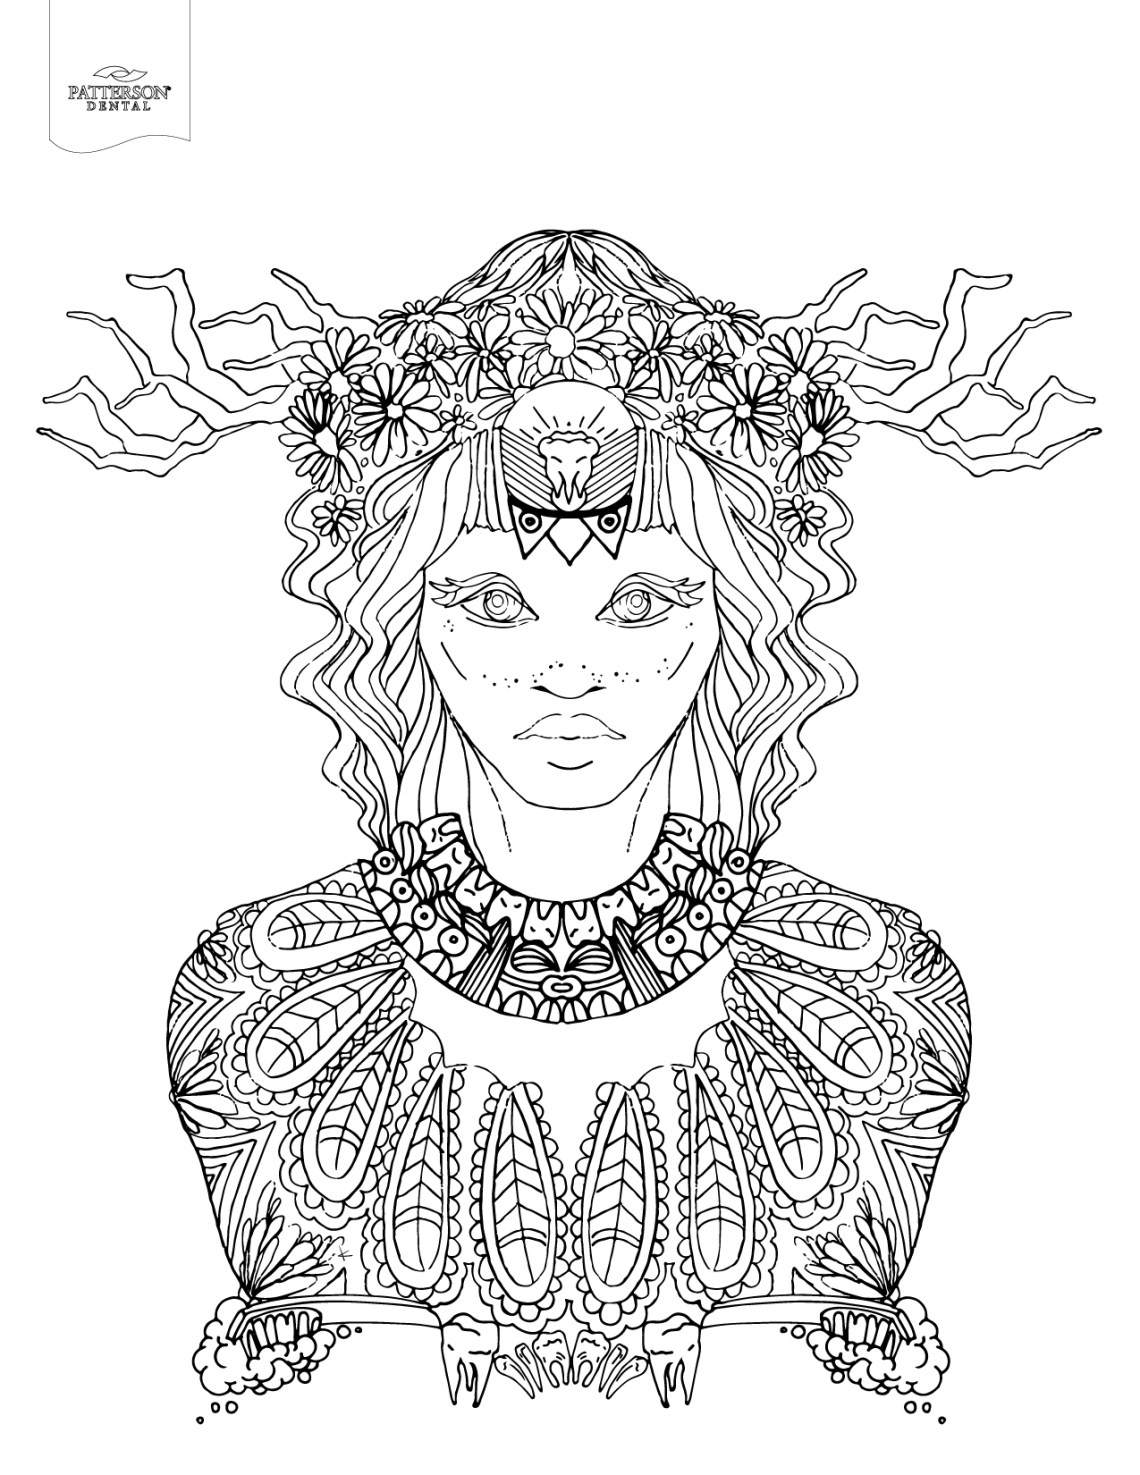 10 Toothy Adult Coloring Pages [Printable] – Off the Cusp   printable coloring pages for adults